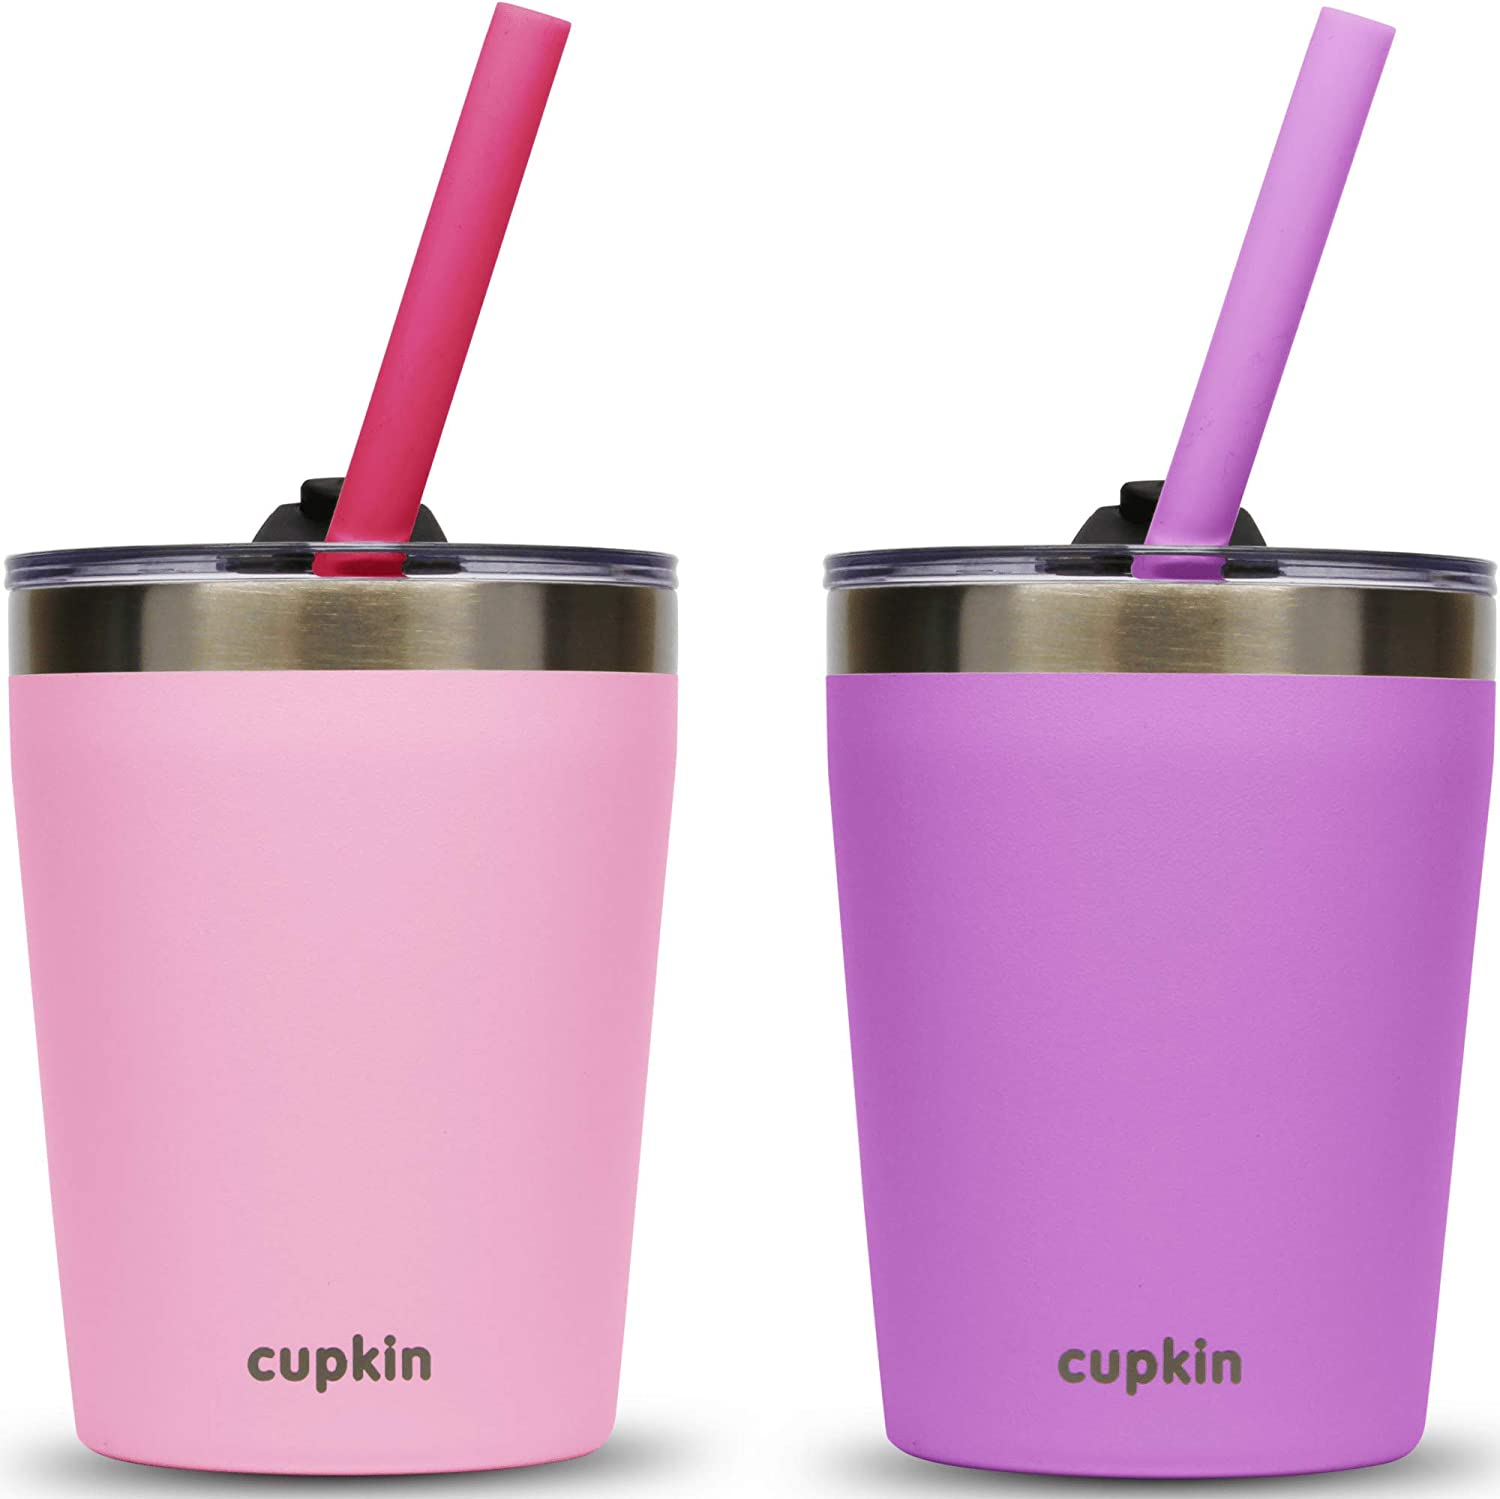 Stackable Stainless Steel Toddler Cups for Kids by CUPKIN - Set of 2 Powder Coated 8 oz Vacuum Insulated Tumblers, 2 Non BPA Lids and 2 Food Grade Reusable Silicone Straws (Pink + Purple)